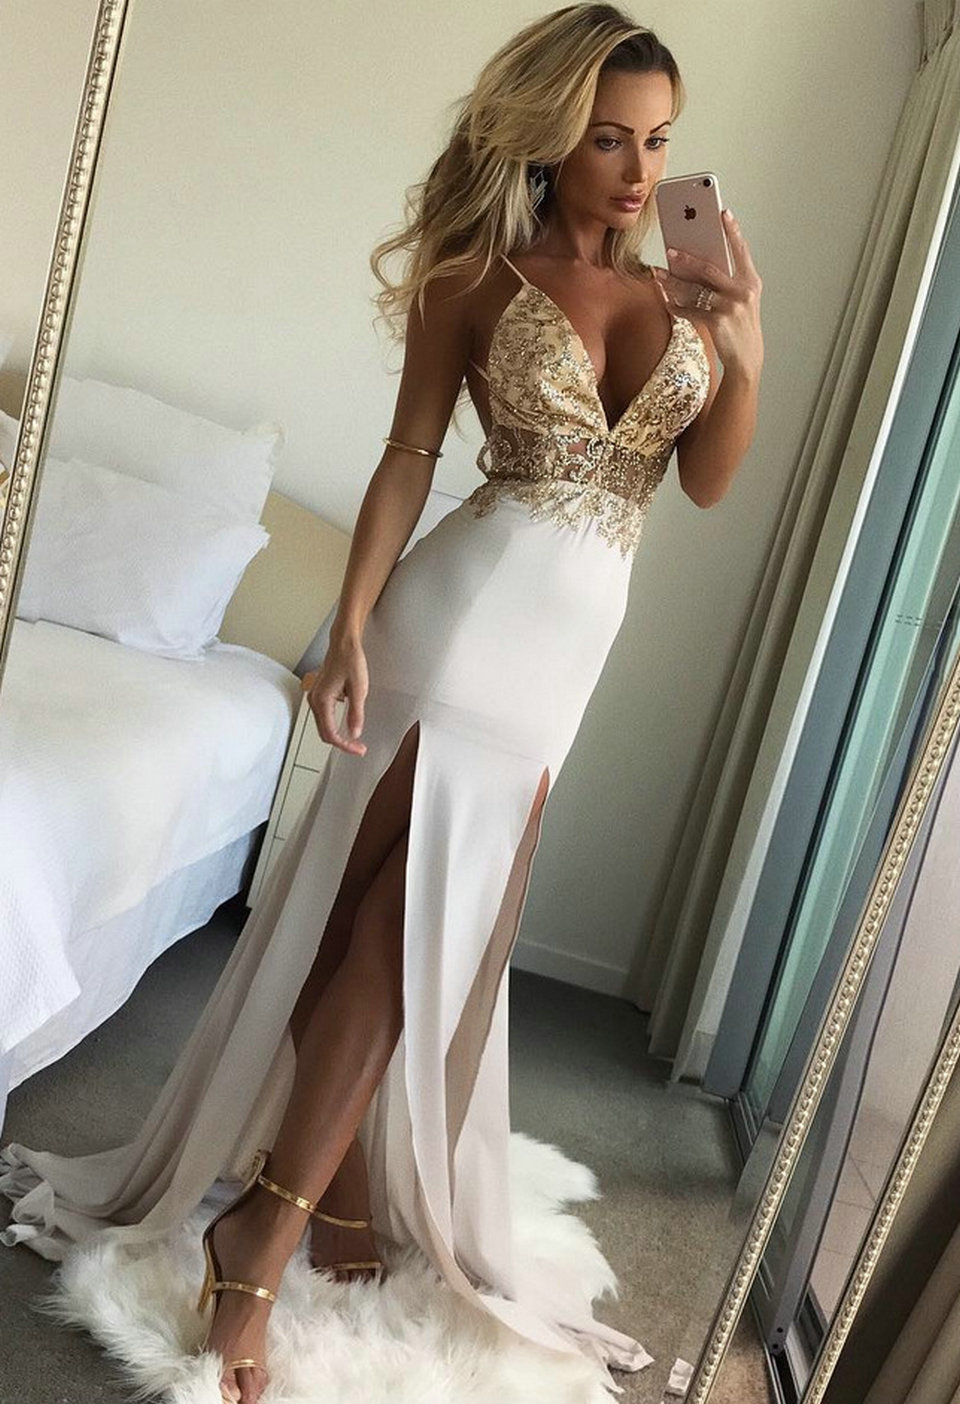 3f0dfc8ad0 US $39.0 |Fashion Ivory Mermaid Long Evening Gowns 2018 Sexy Evening  Dresses Women Party V Neck Elastic Satin Backless Formal Dress Prom-in  Evening ...